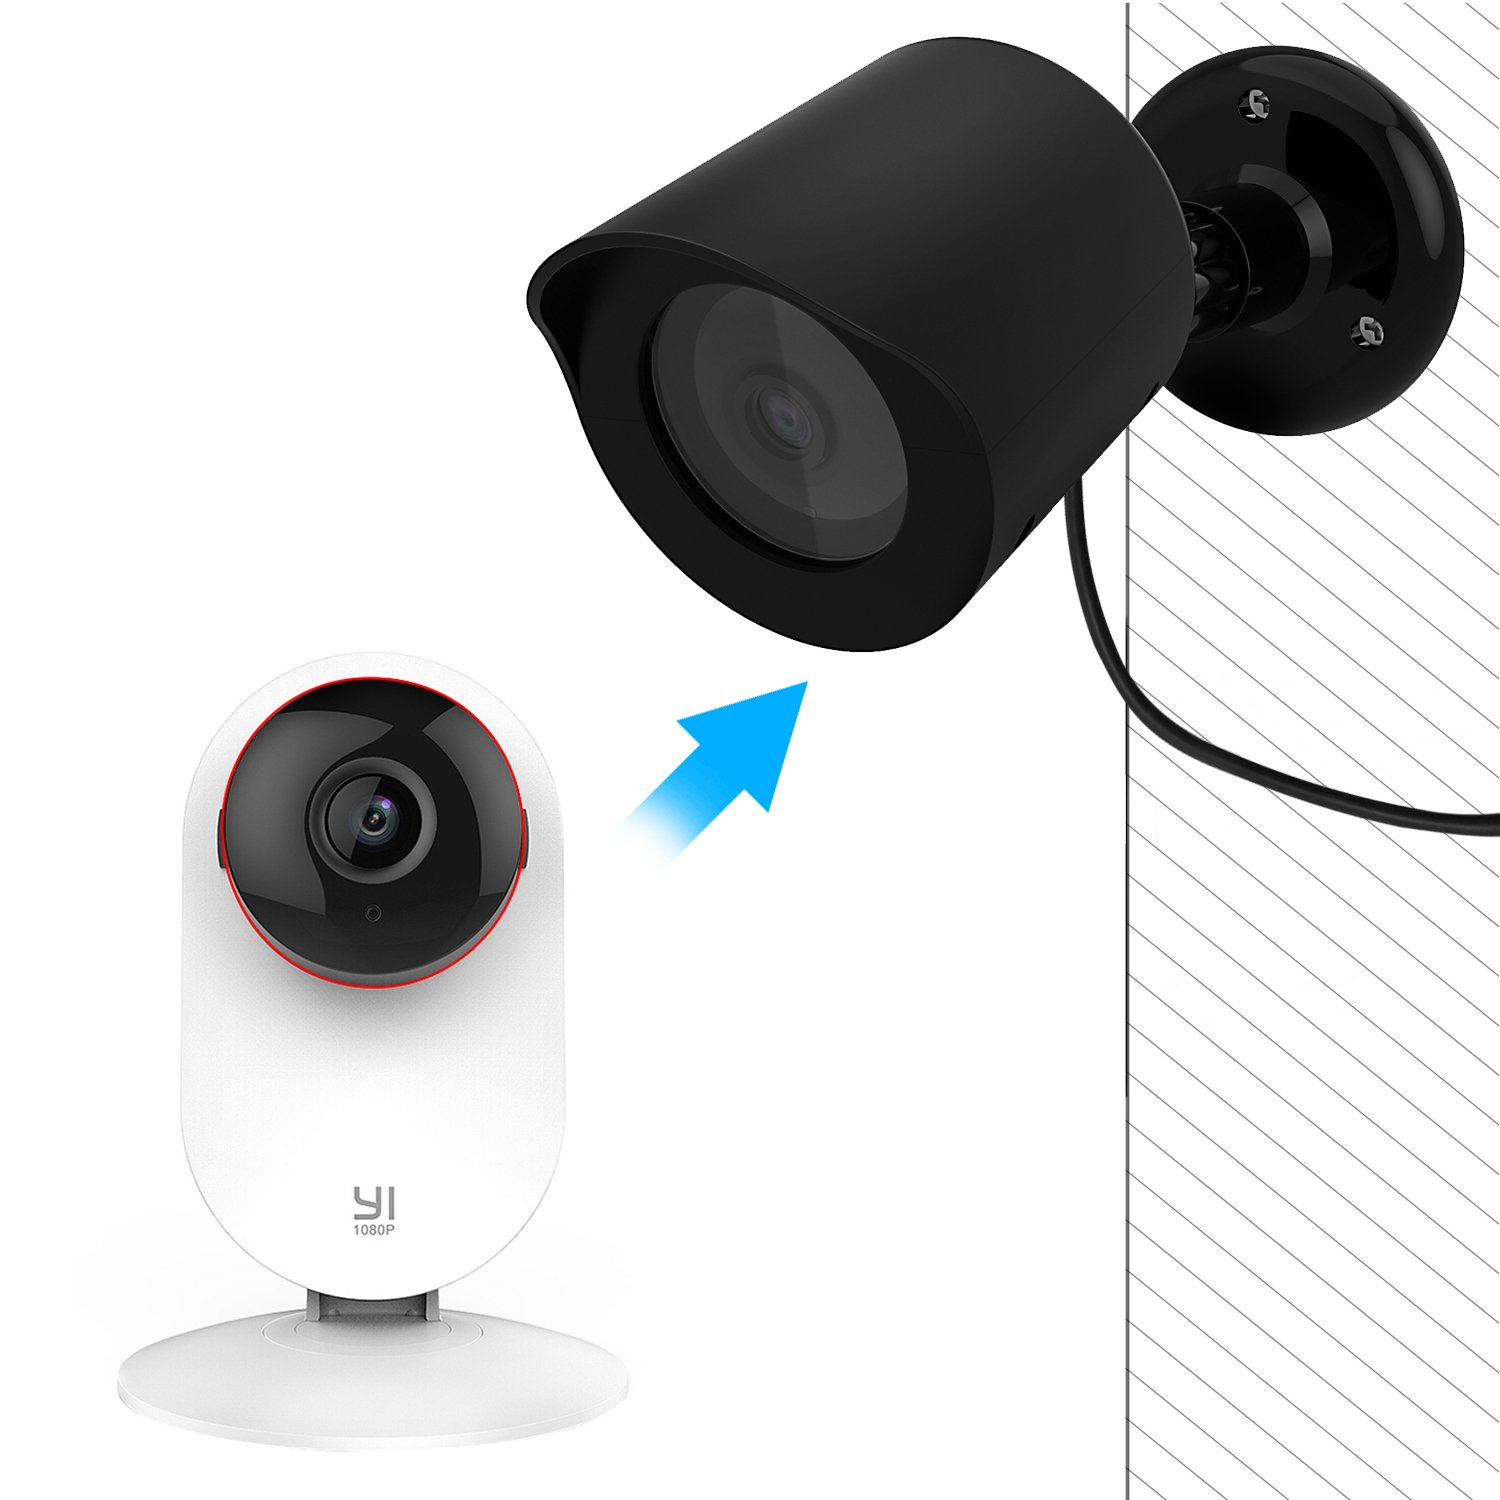 YI Home Camera Wall Mount, Basstop 360 Degree Swivel Bracket Holder Case Cover for YI 1080p/720p Home Camera Outdoor&Indoor Weatherproof High grade Plastic Housing …